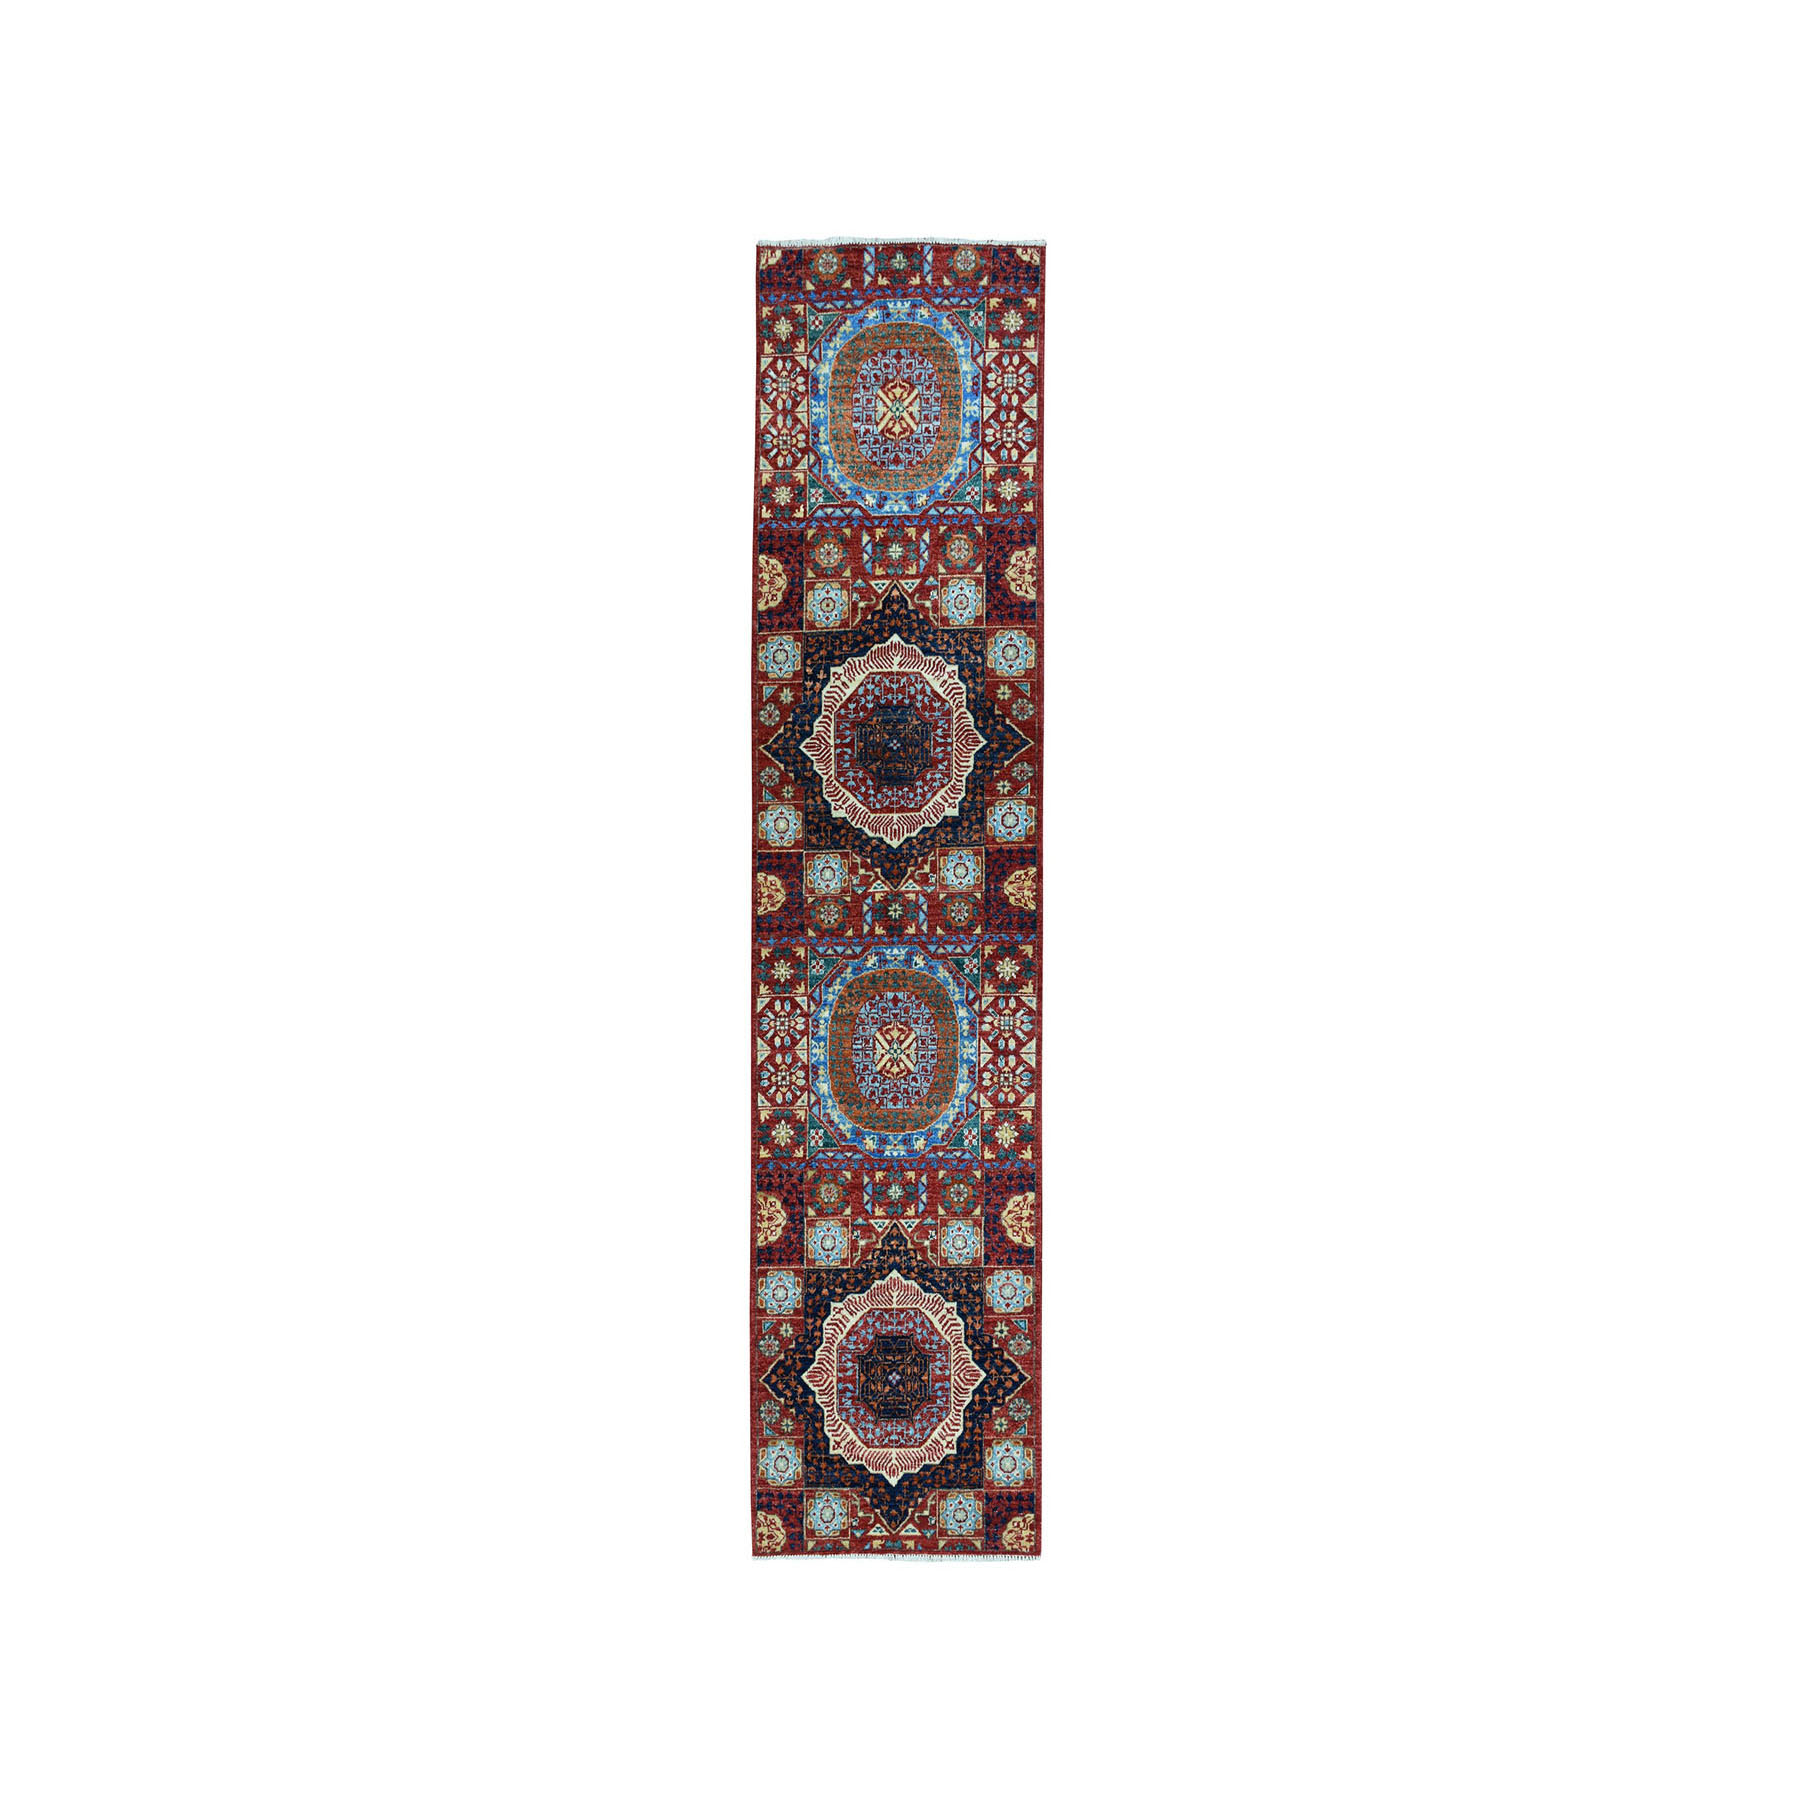 "2'10""X10' Colorful Peshawar Mamluk Design Pure Wool Hand-Knotted Runner Oriental Rug moae086c"